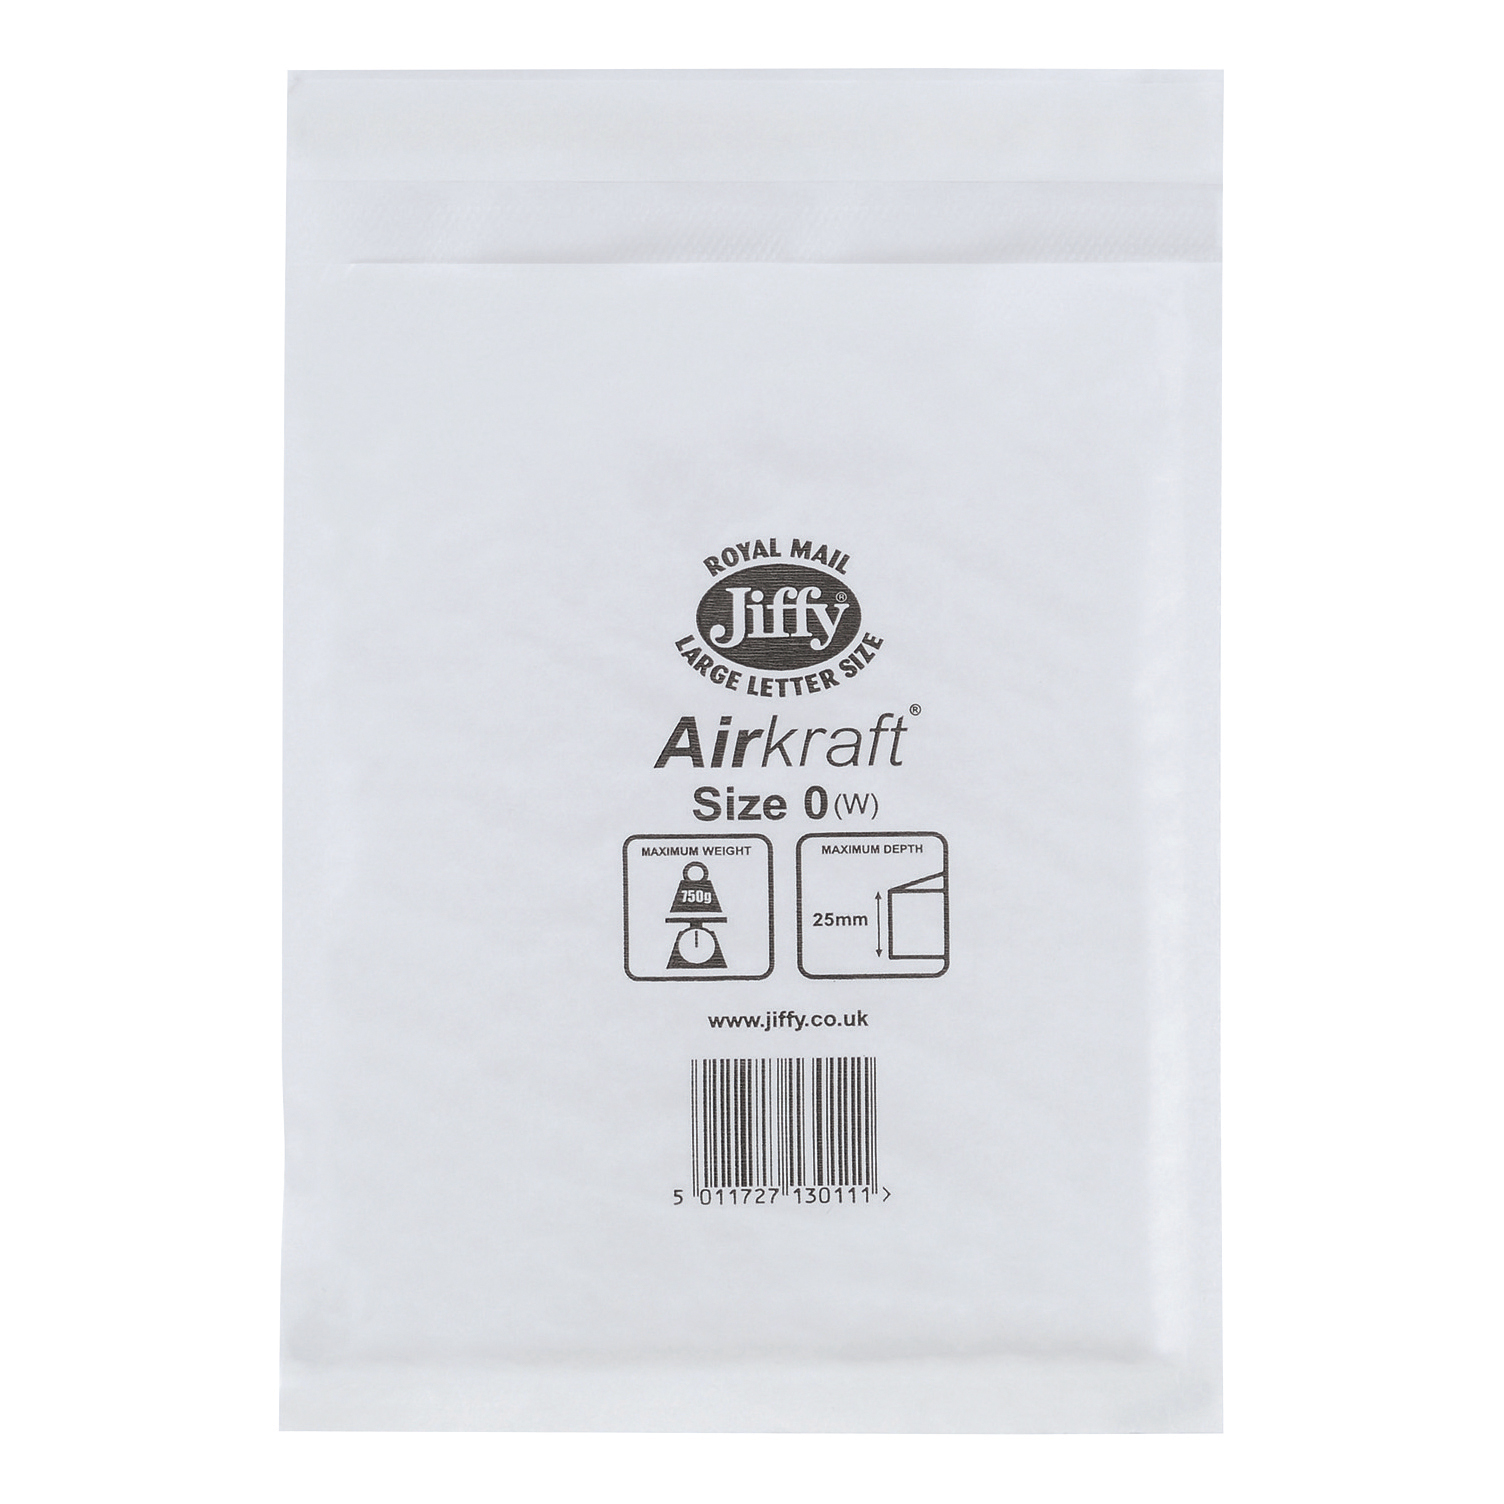 Padded Bags & Envelopes Jiffy Airkraft Bag Bubble-lined Peel and Seal Size 0 White 140x195mm Ref JL-0 Pack 100